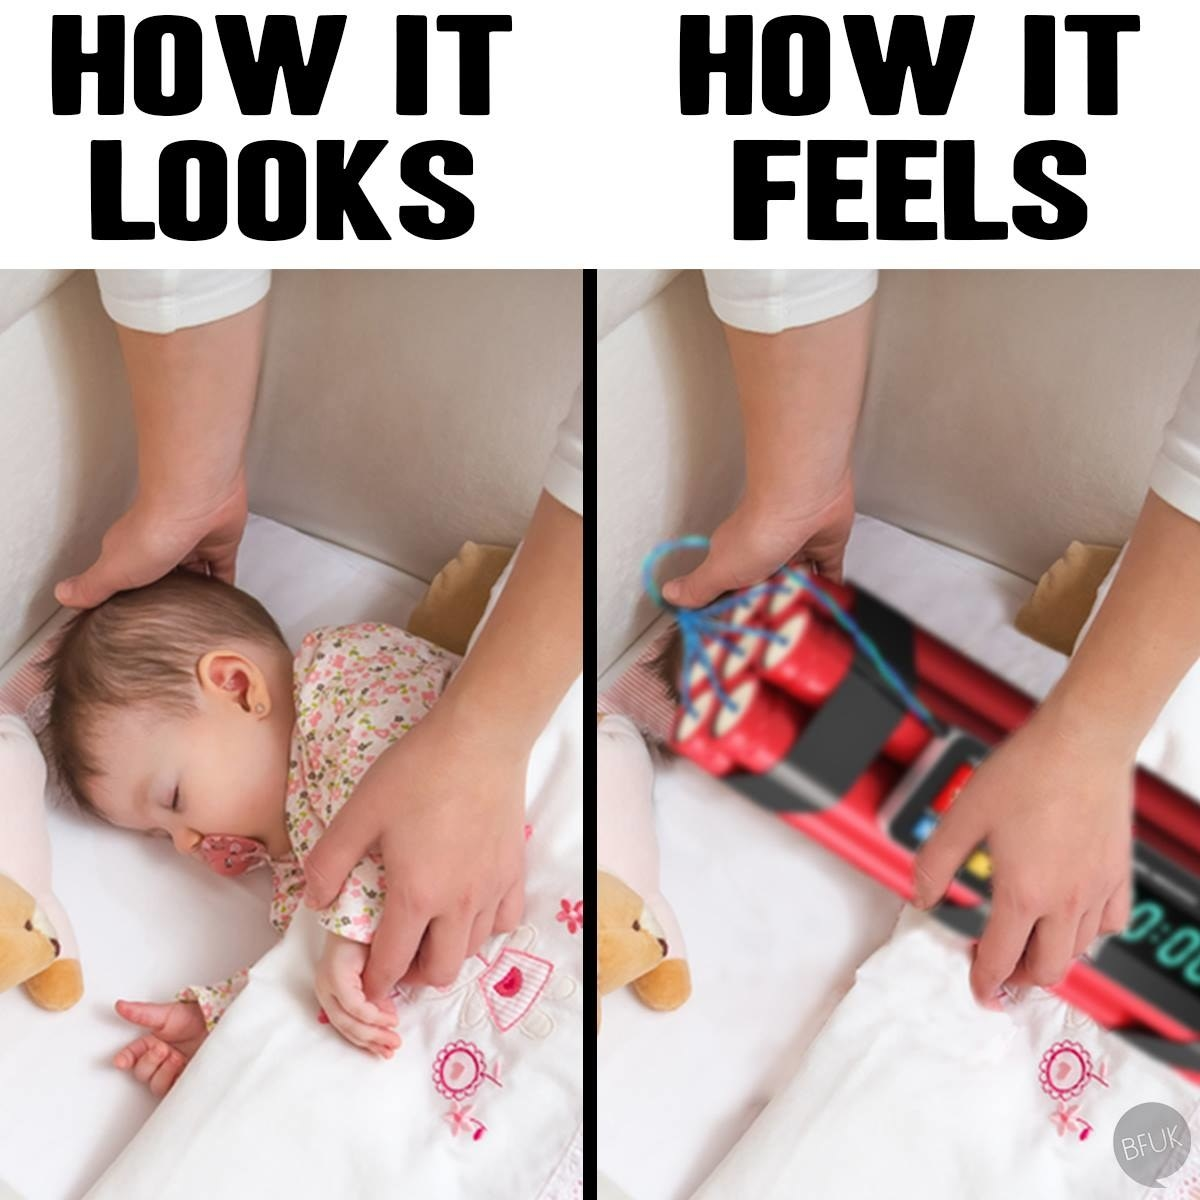 sub buzz 12012 1487889981 1?downsize=715 *&output format=auto&output quality=auto 100 parenting memes that will keep you laughing for hours